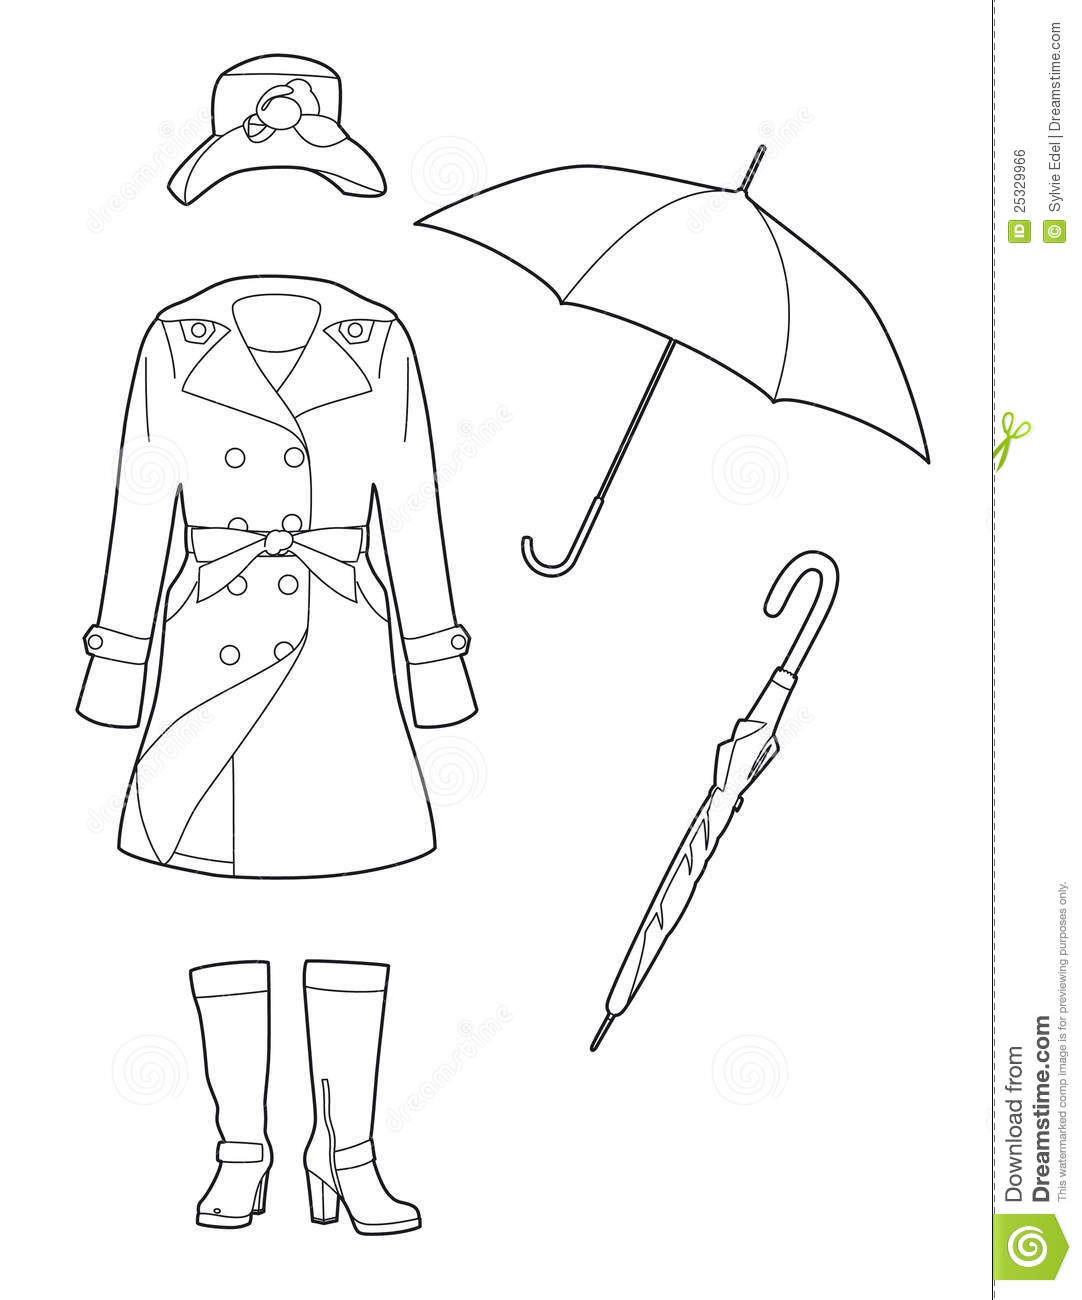 Drawing Rainwear Royalty Free Stock Image Image 25329966